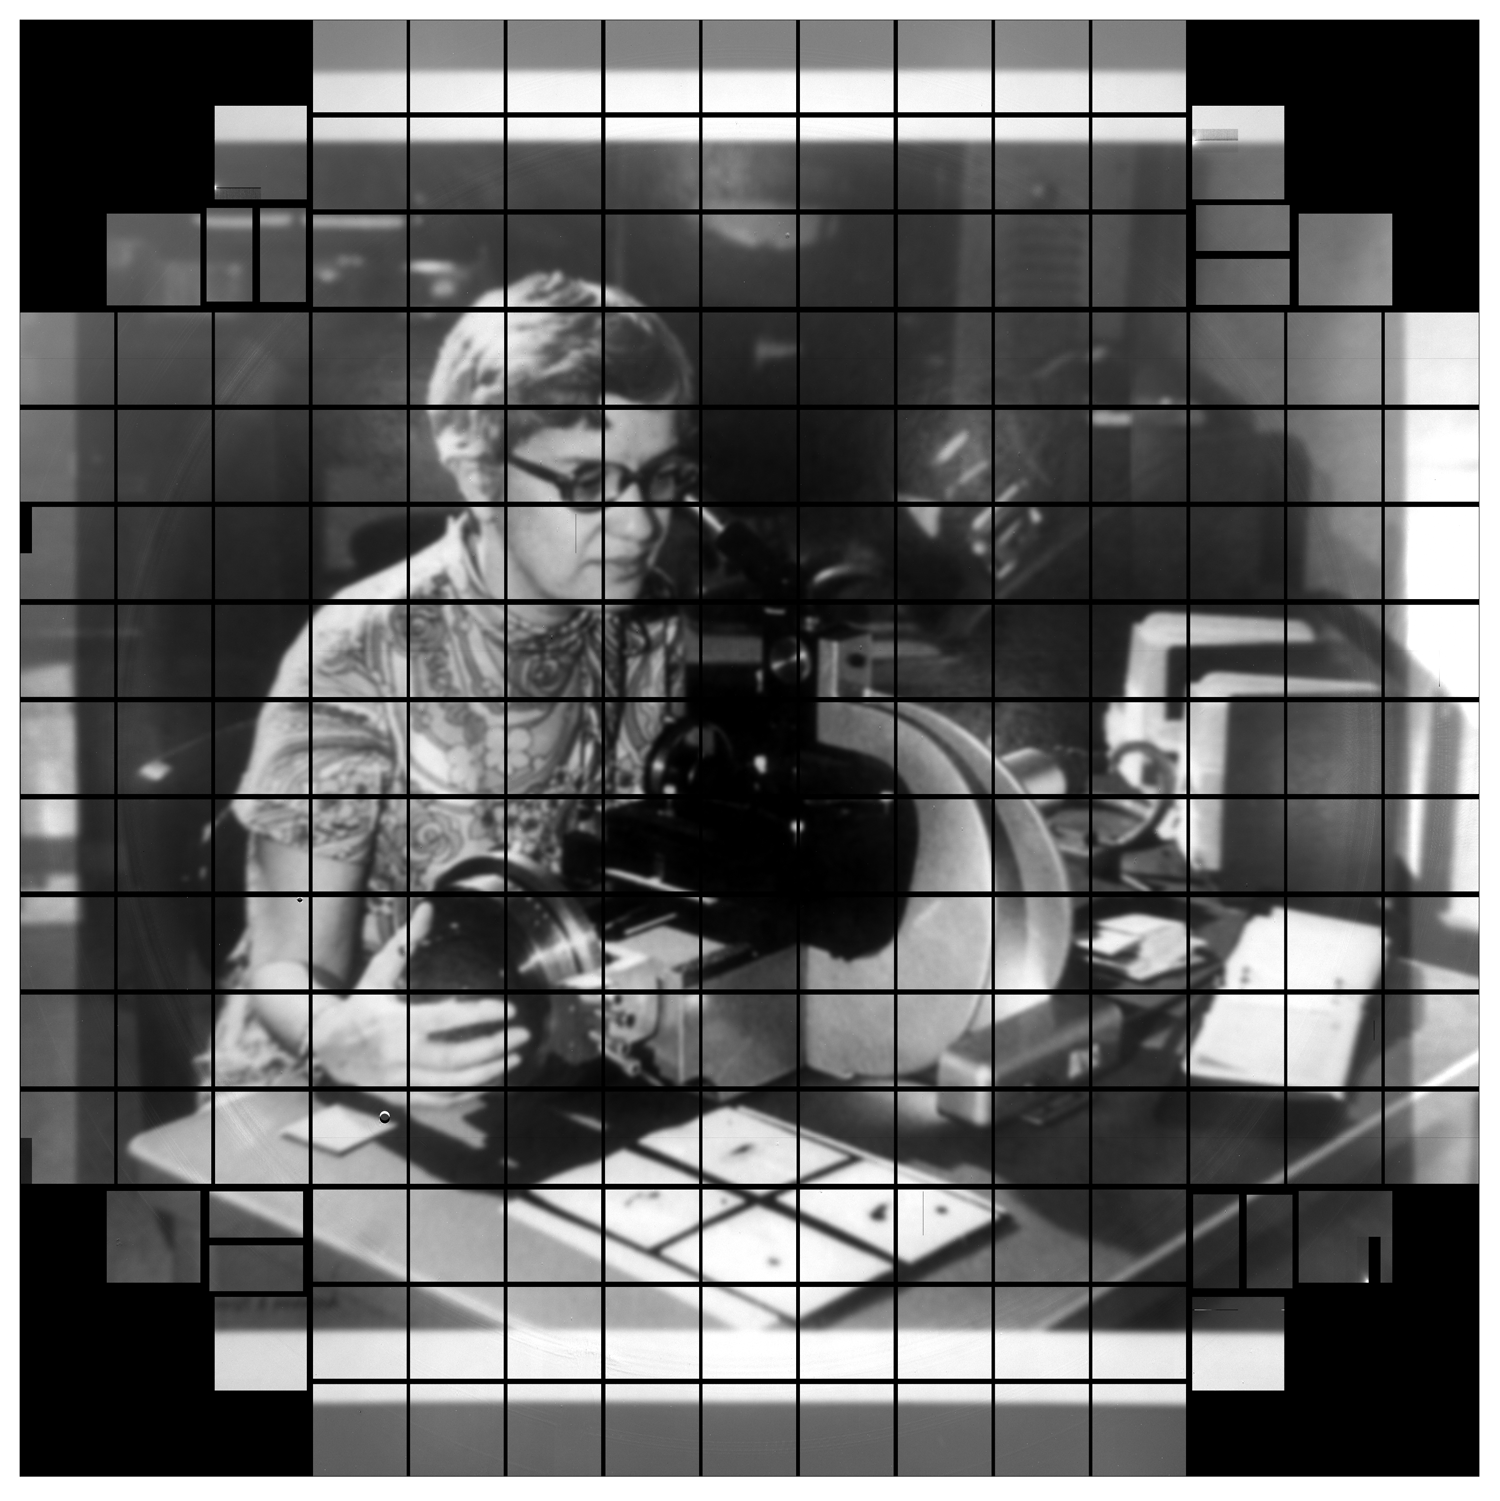 Photo of Vera Rubin, courtesy of the Carnegie Institution for Science, where Vera Rubin spent her career as a staff scientist. Credit: LSST Camera Team/SLAC National Accelerator Laboratory/Rubin Observatory